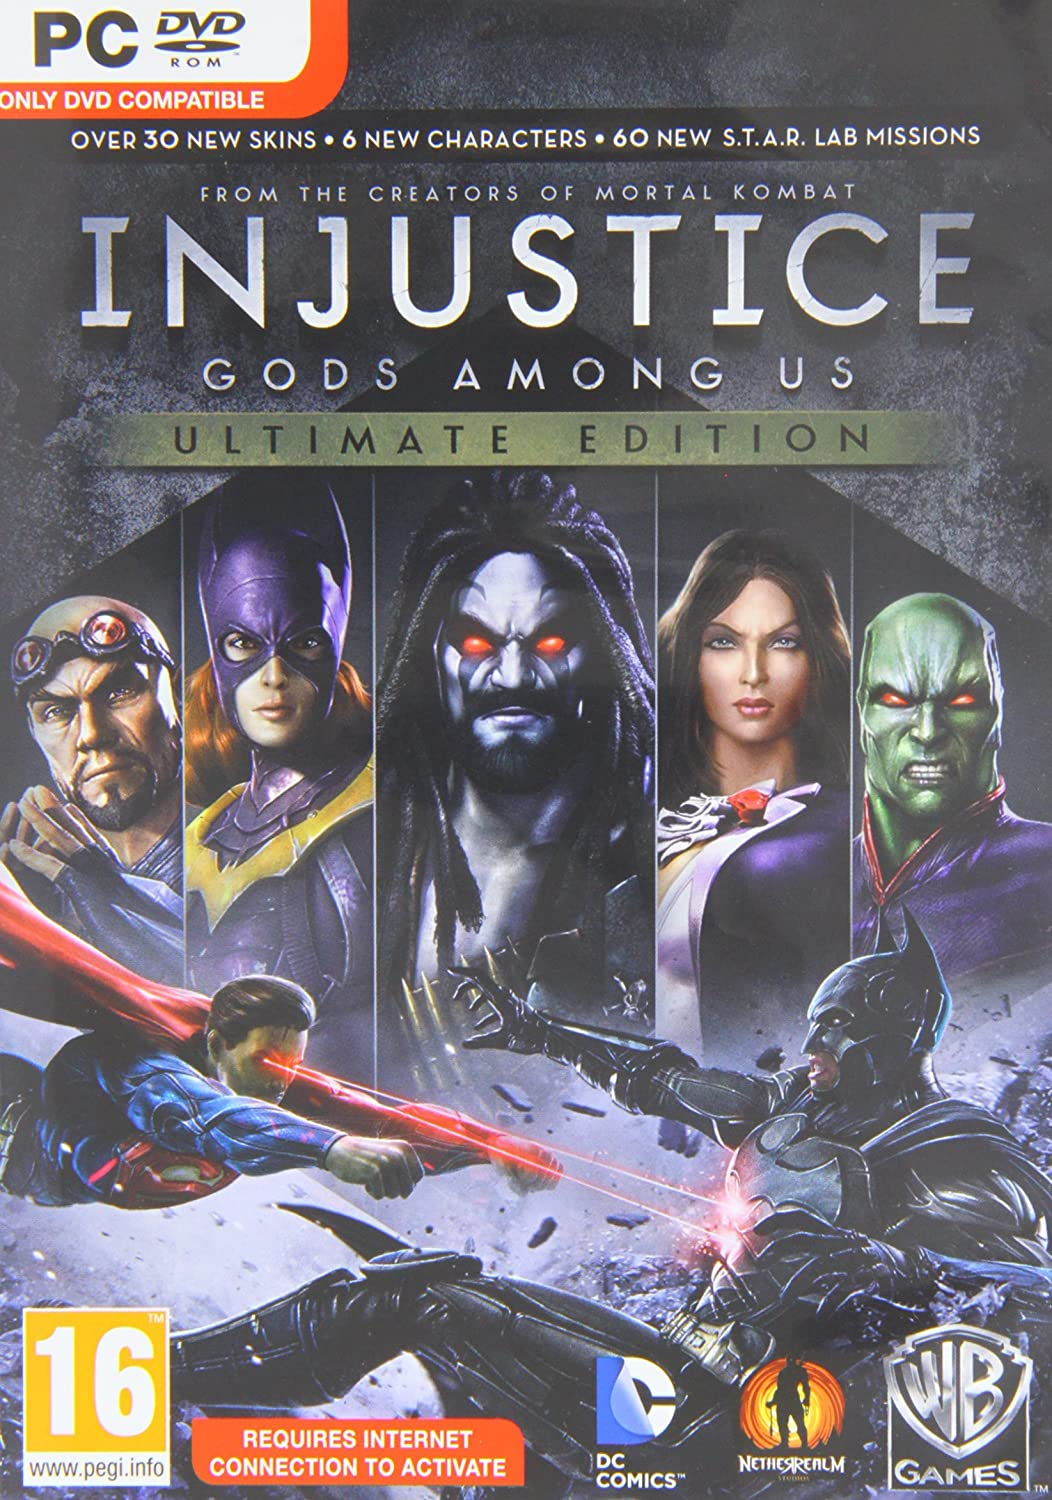 injustice gods among us ultimate edition pc free download